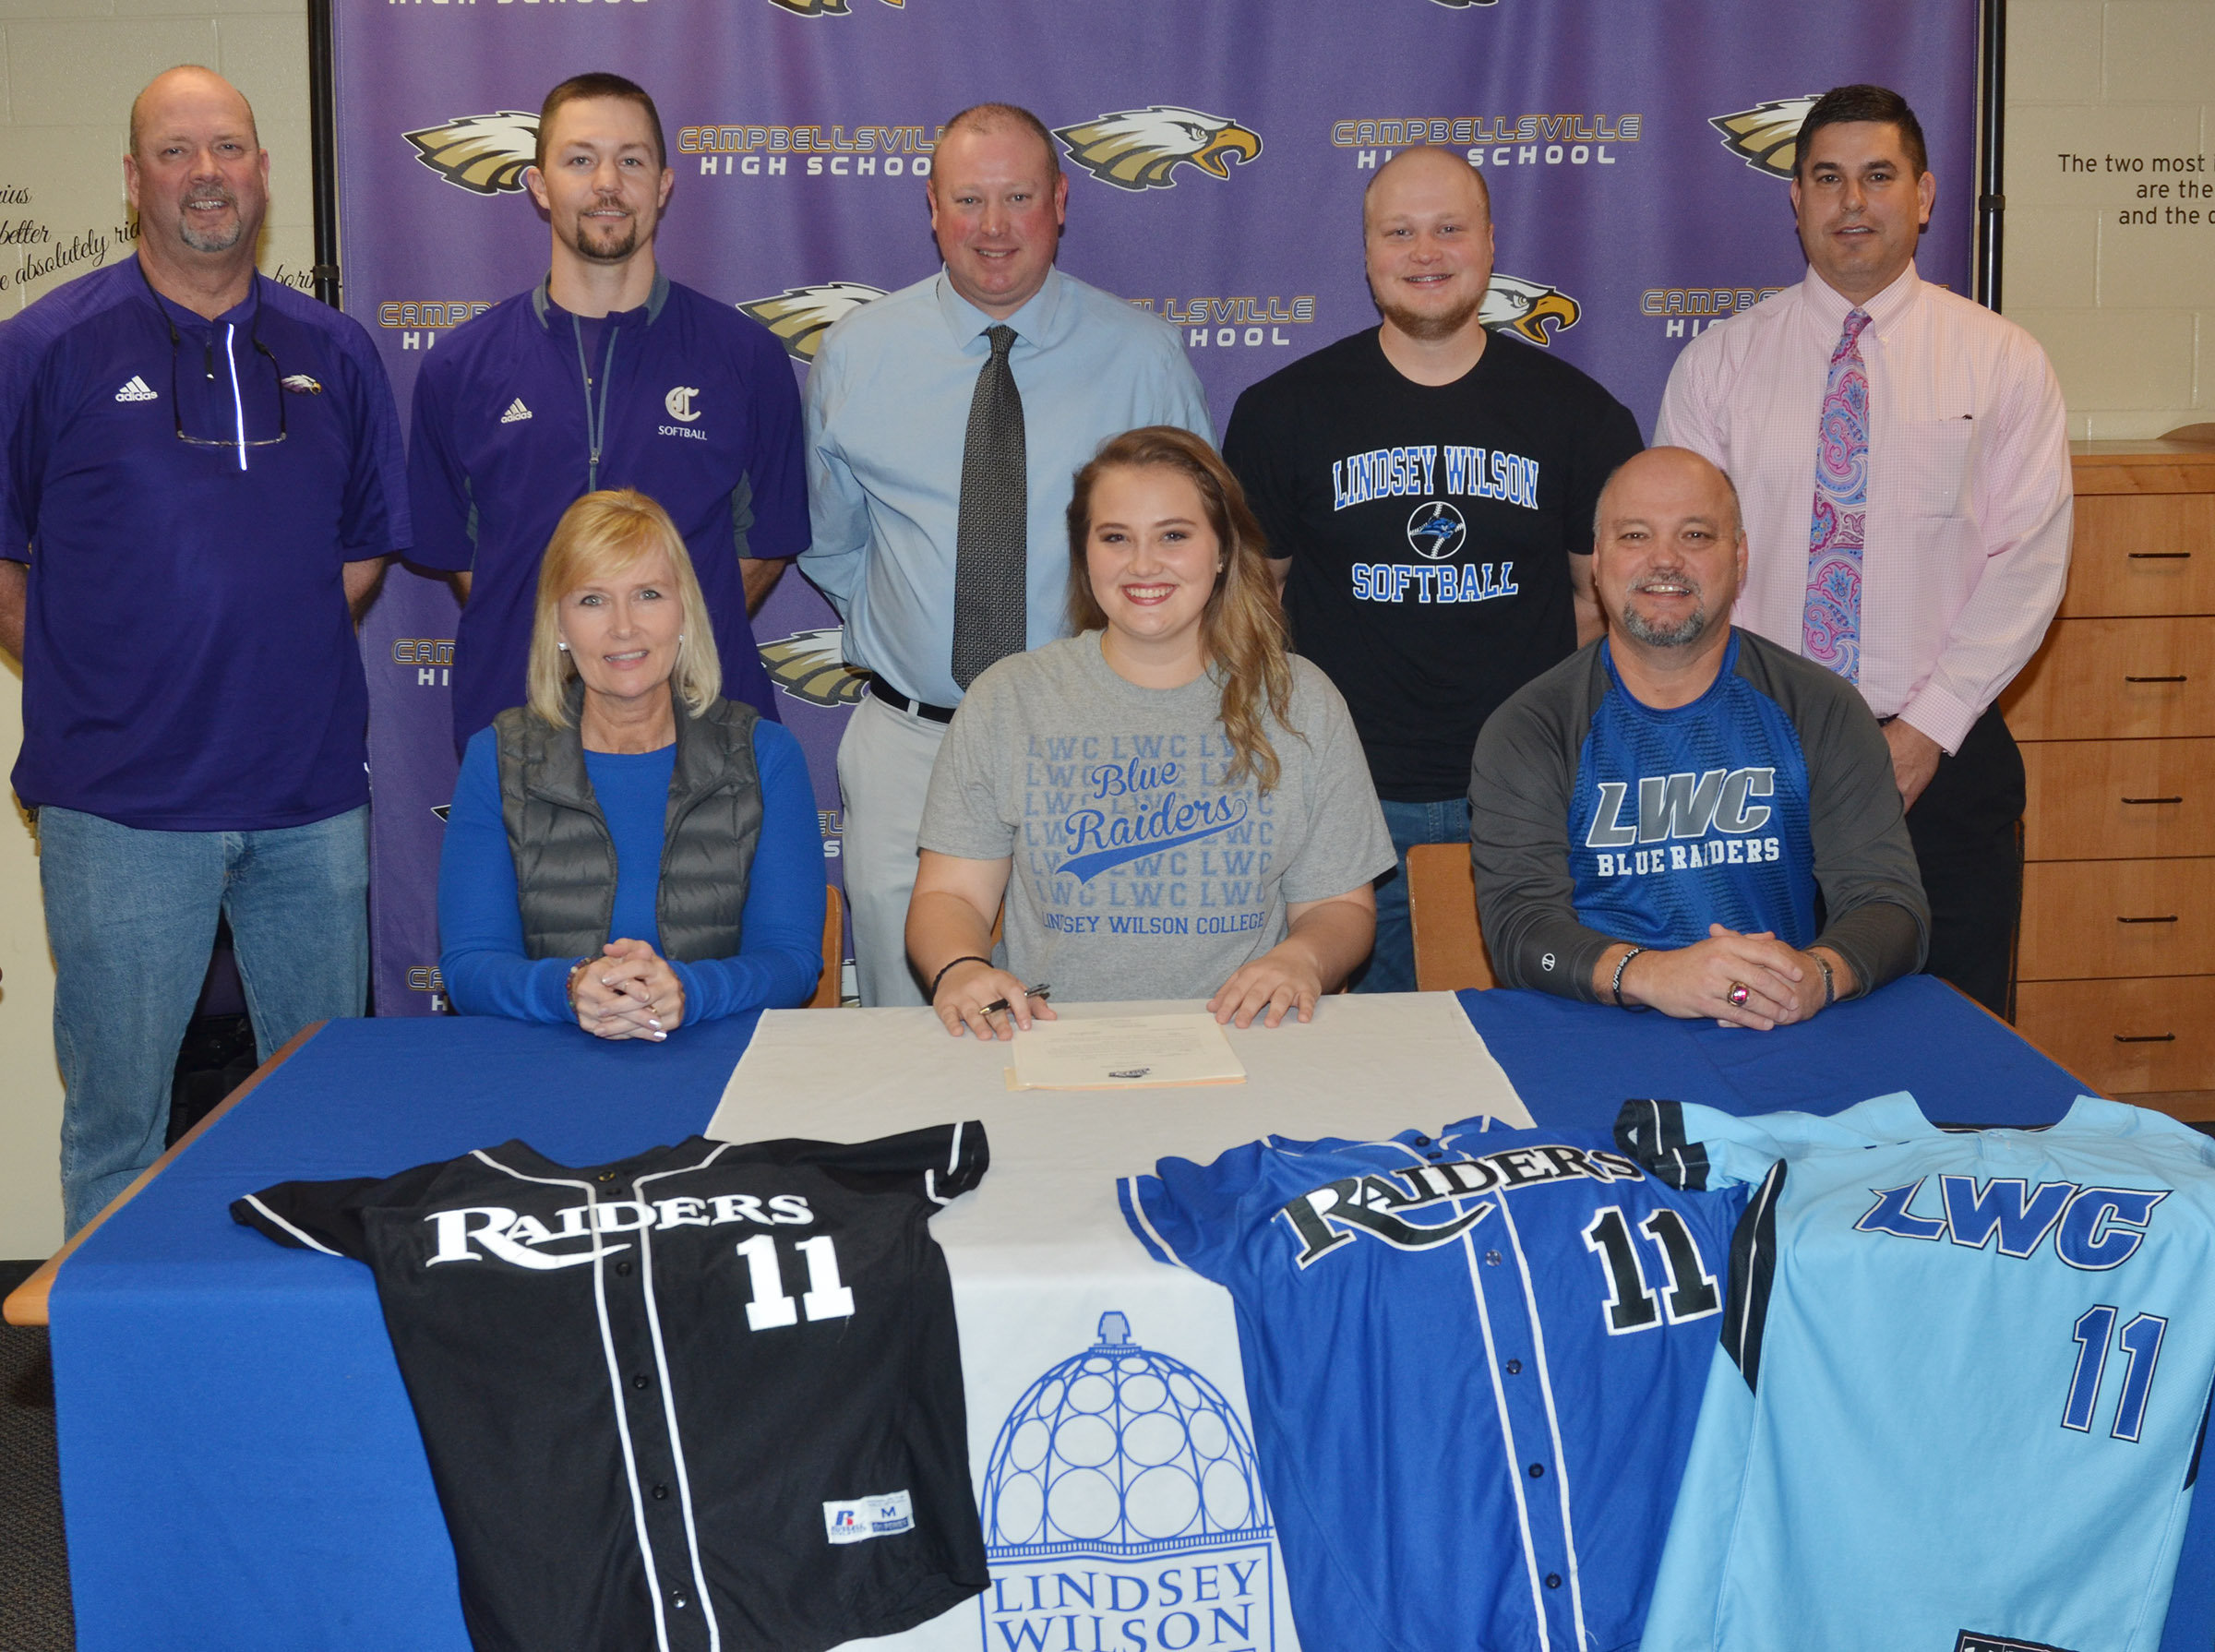 CHS senior Brenna Wethington has signed to continue her softball career at Lindsey Wilson College. She is pictured her parents, Sheila and John Wethington. From left, back, CHS Athletic Director Tim Davis, CHS head softball coach Weston Jones, LWC head softball coach David Dews, Wethington's brother Mason Wethington and CHS Principal Kirby Smith.